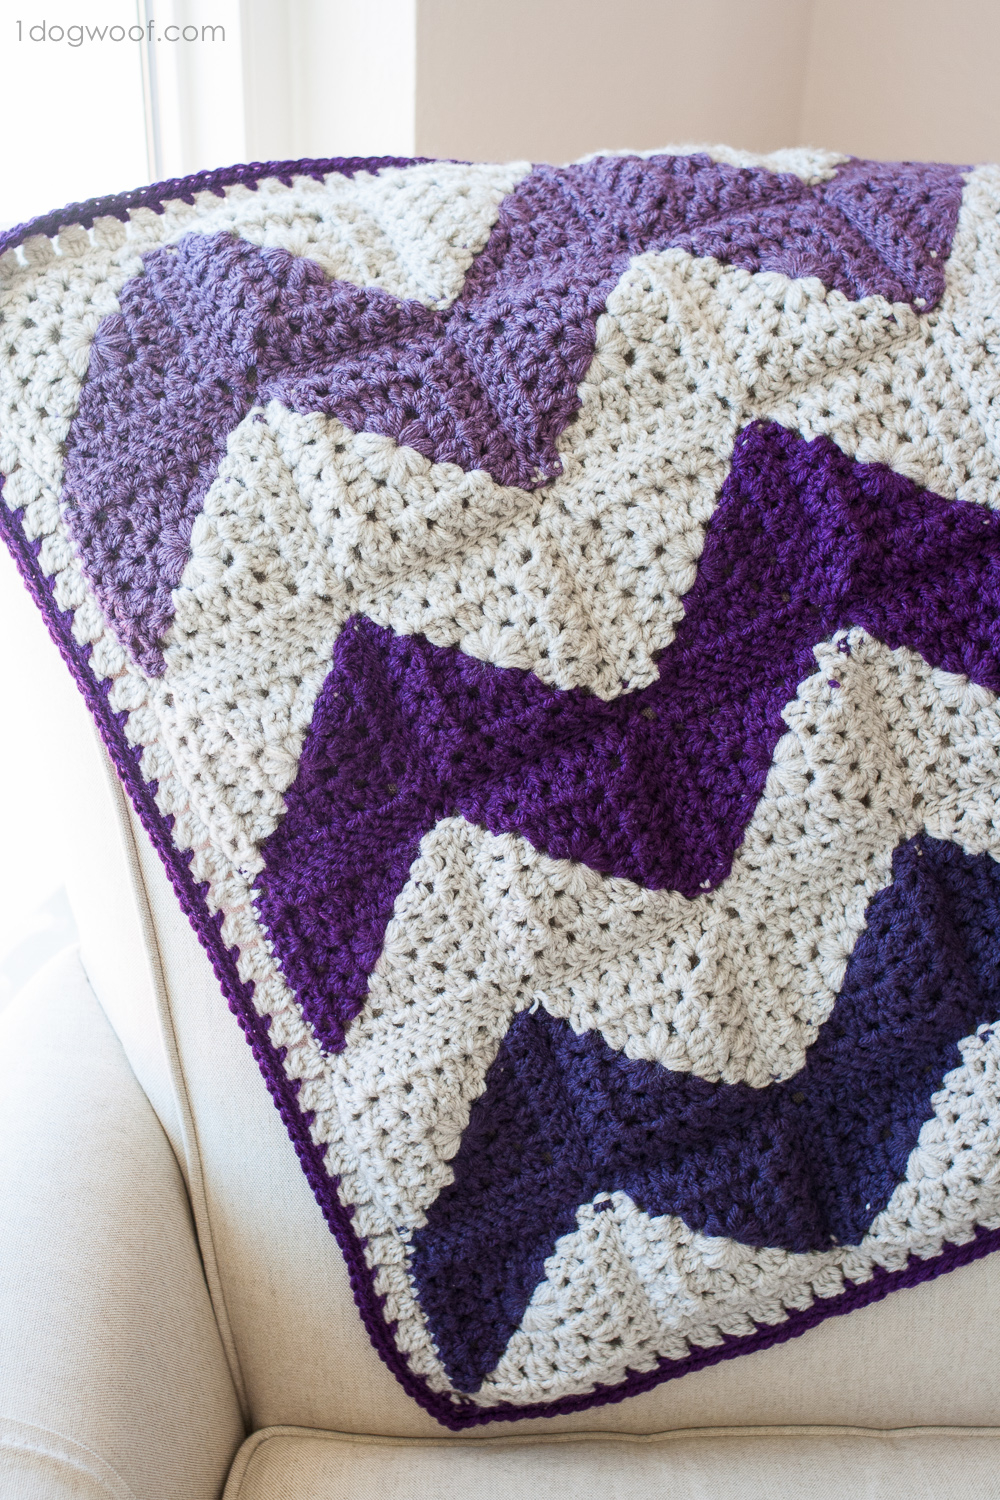 Knitted Squares Patterns Free Granny Squares Chevron Afghan Crochet Pattern One Dog Woof